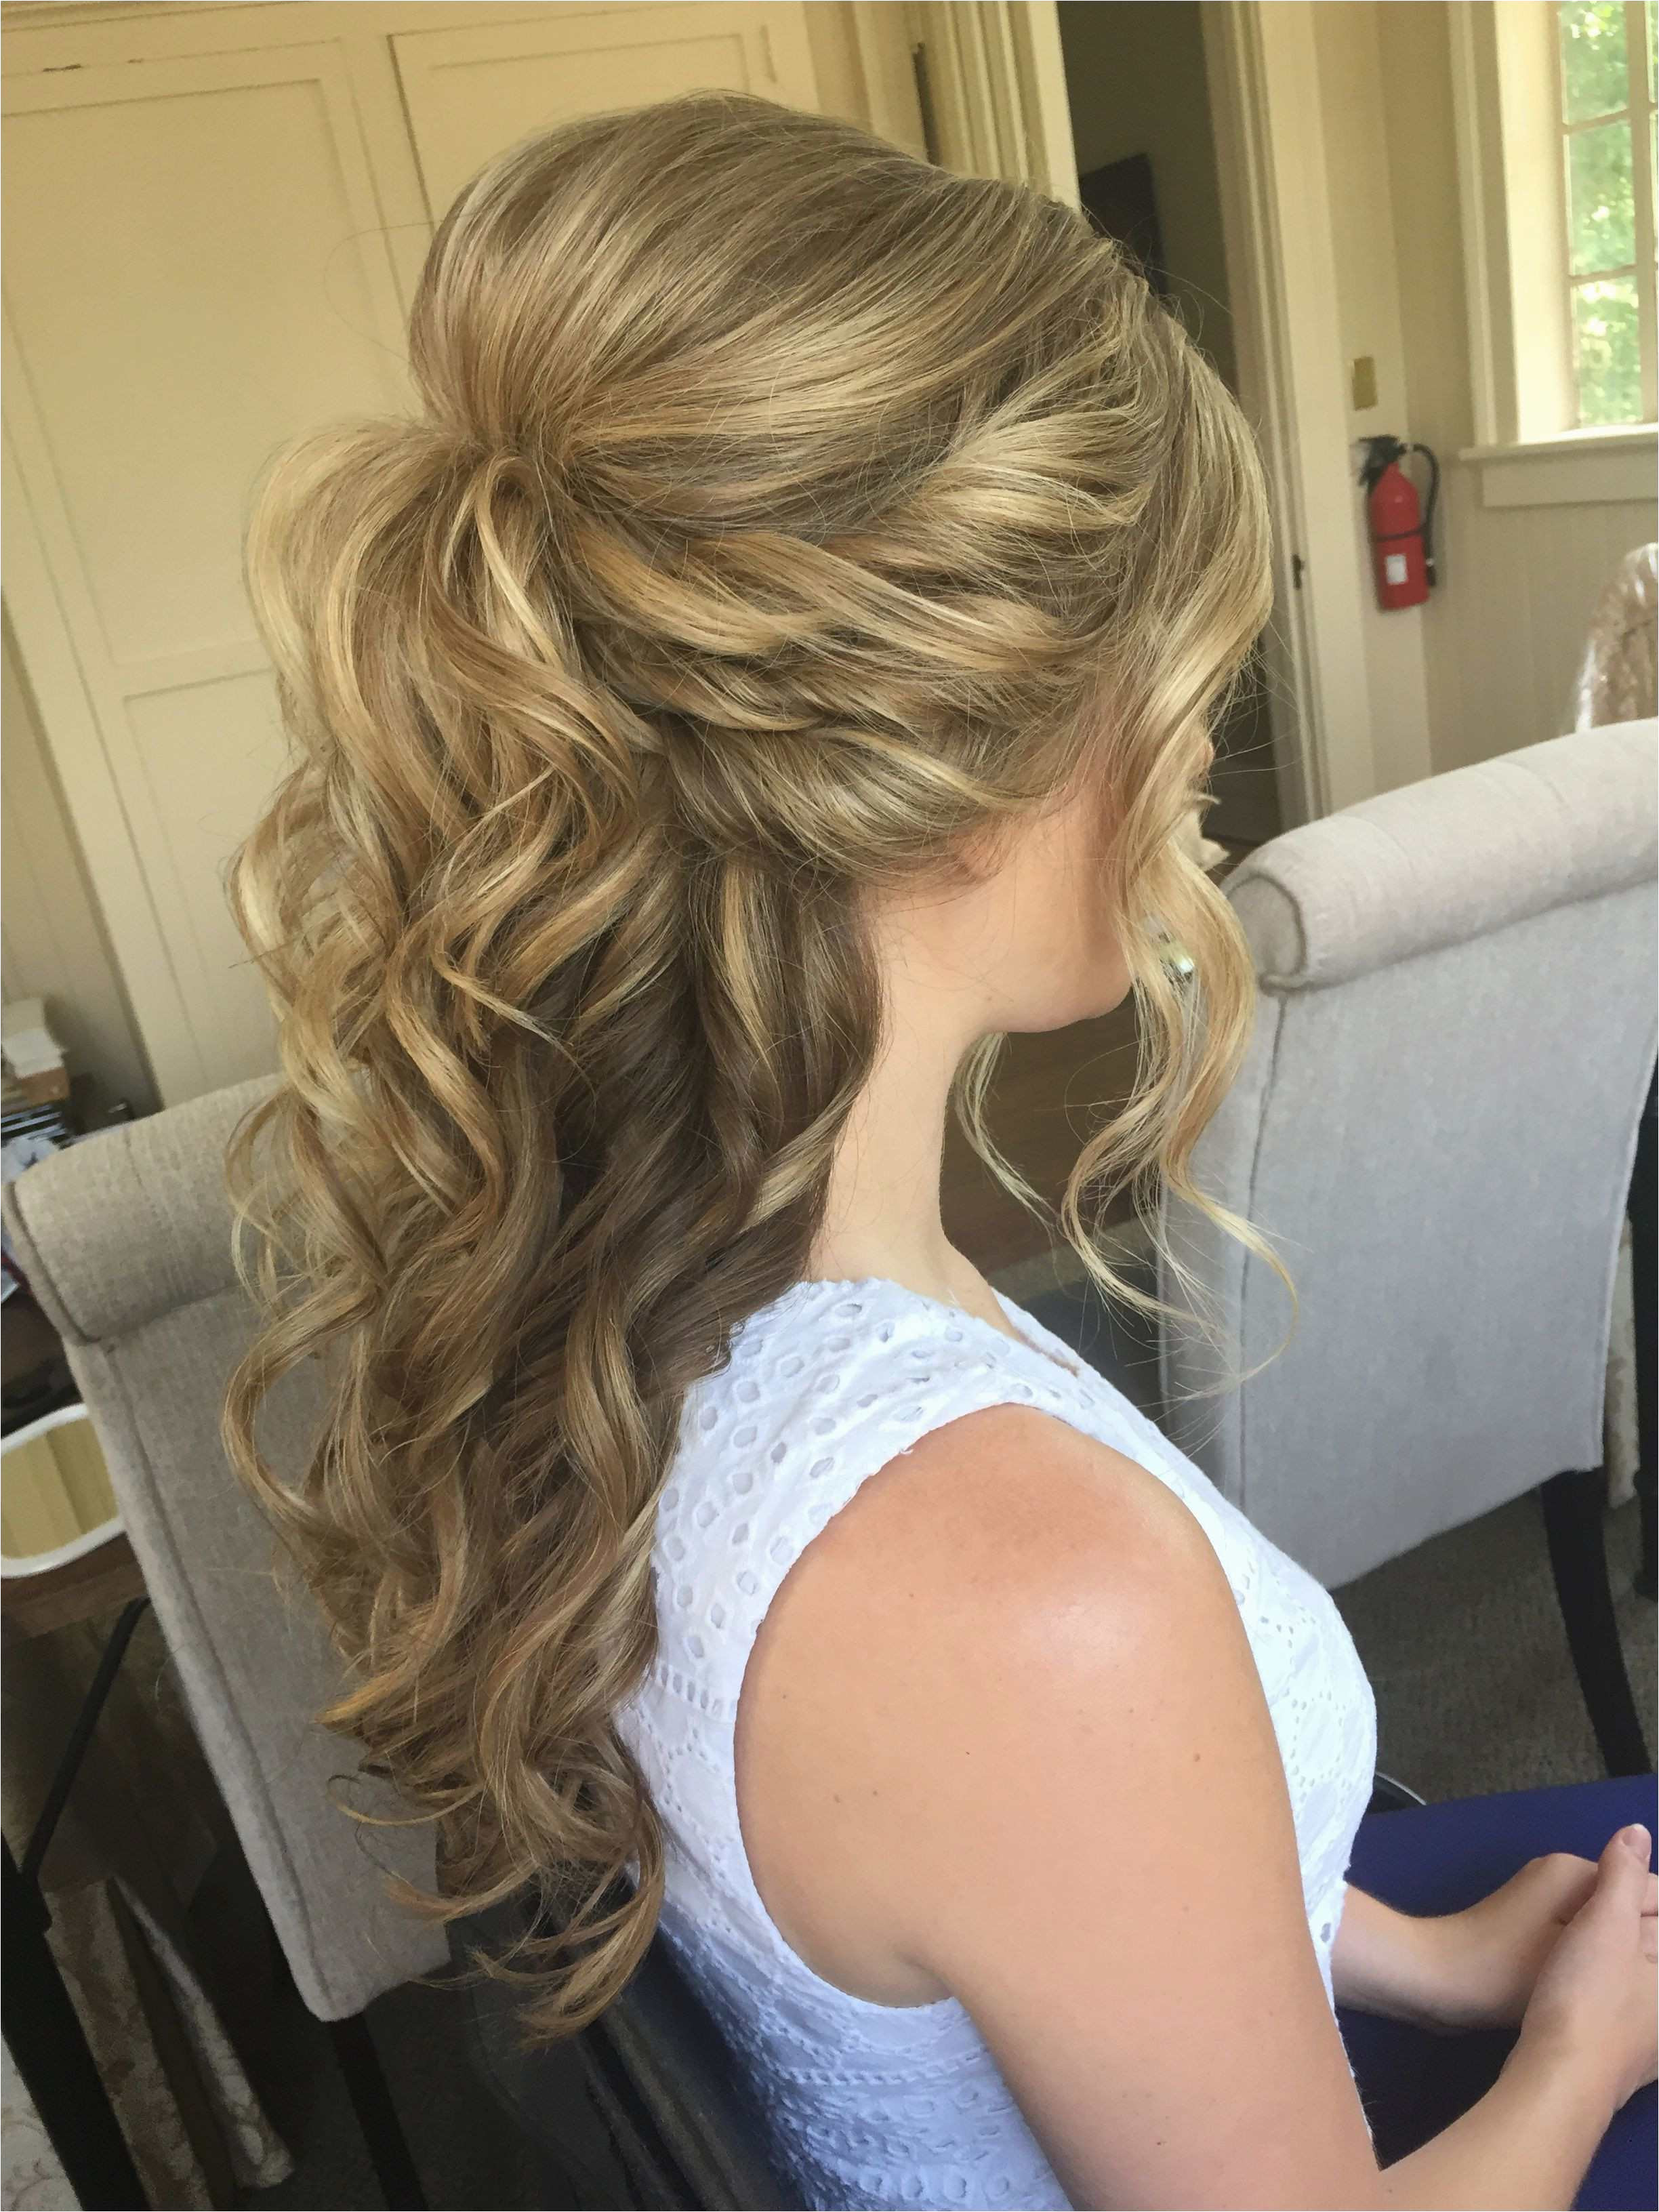 Cool Formal Hairstyles for Medium Hair Half Up Half Down Best Half Up Half Down Hairstyles